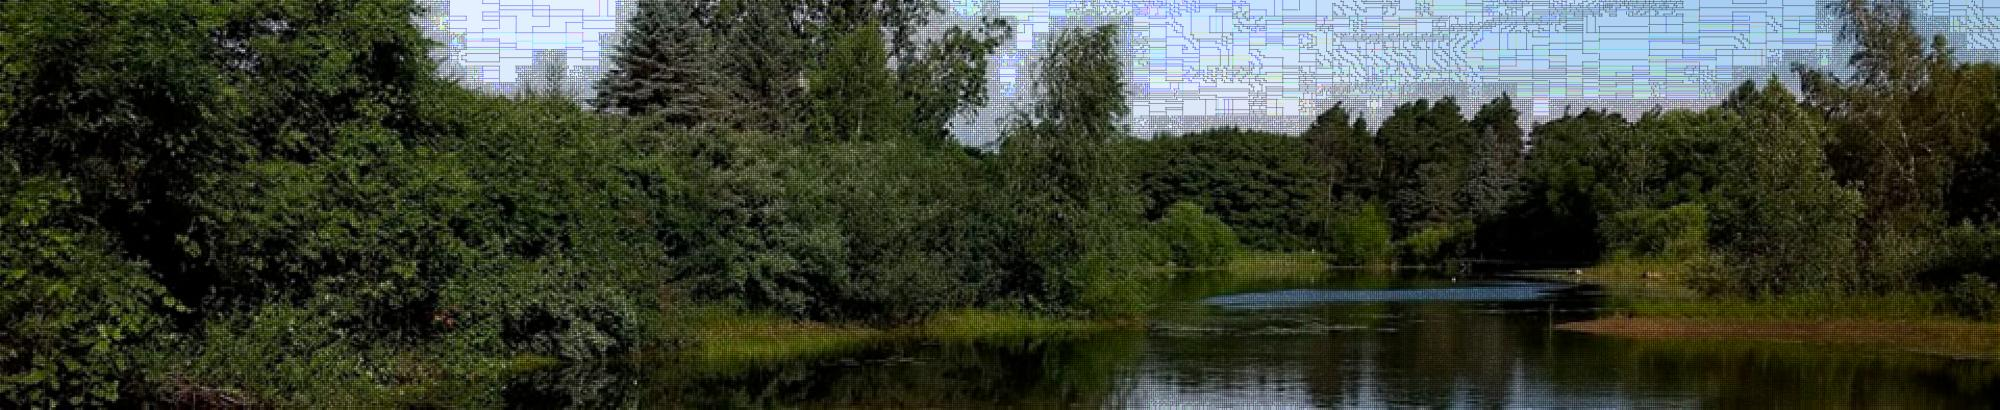 Image shows natural pond with vegetation and trees on a sunny day.